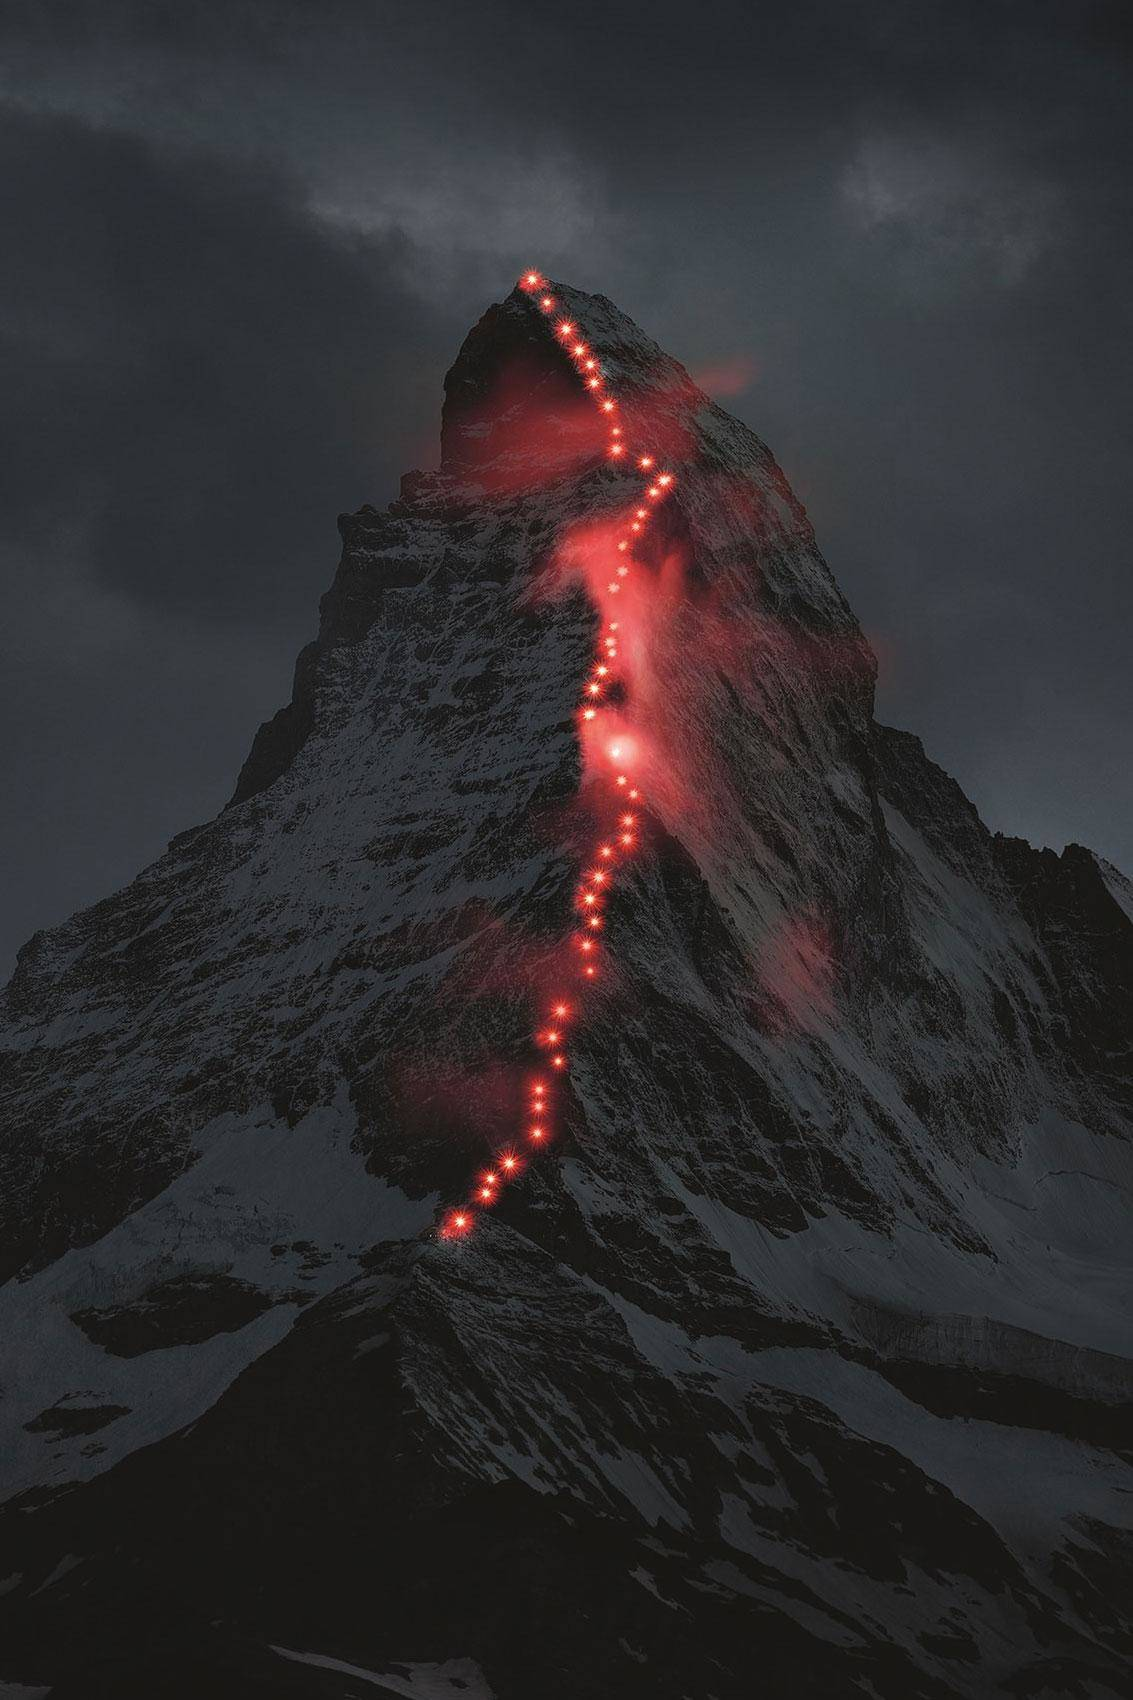 Lamps illuminate the path of the first ascent on the famous Matterhorn mountain, in Zermatt, Switzerland, Late Wednesday, July 8, 2015.